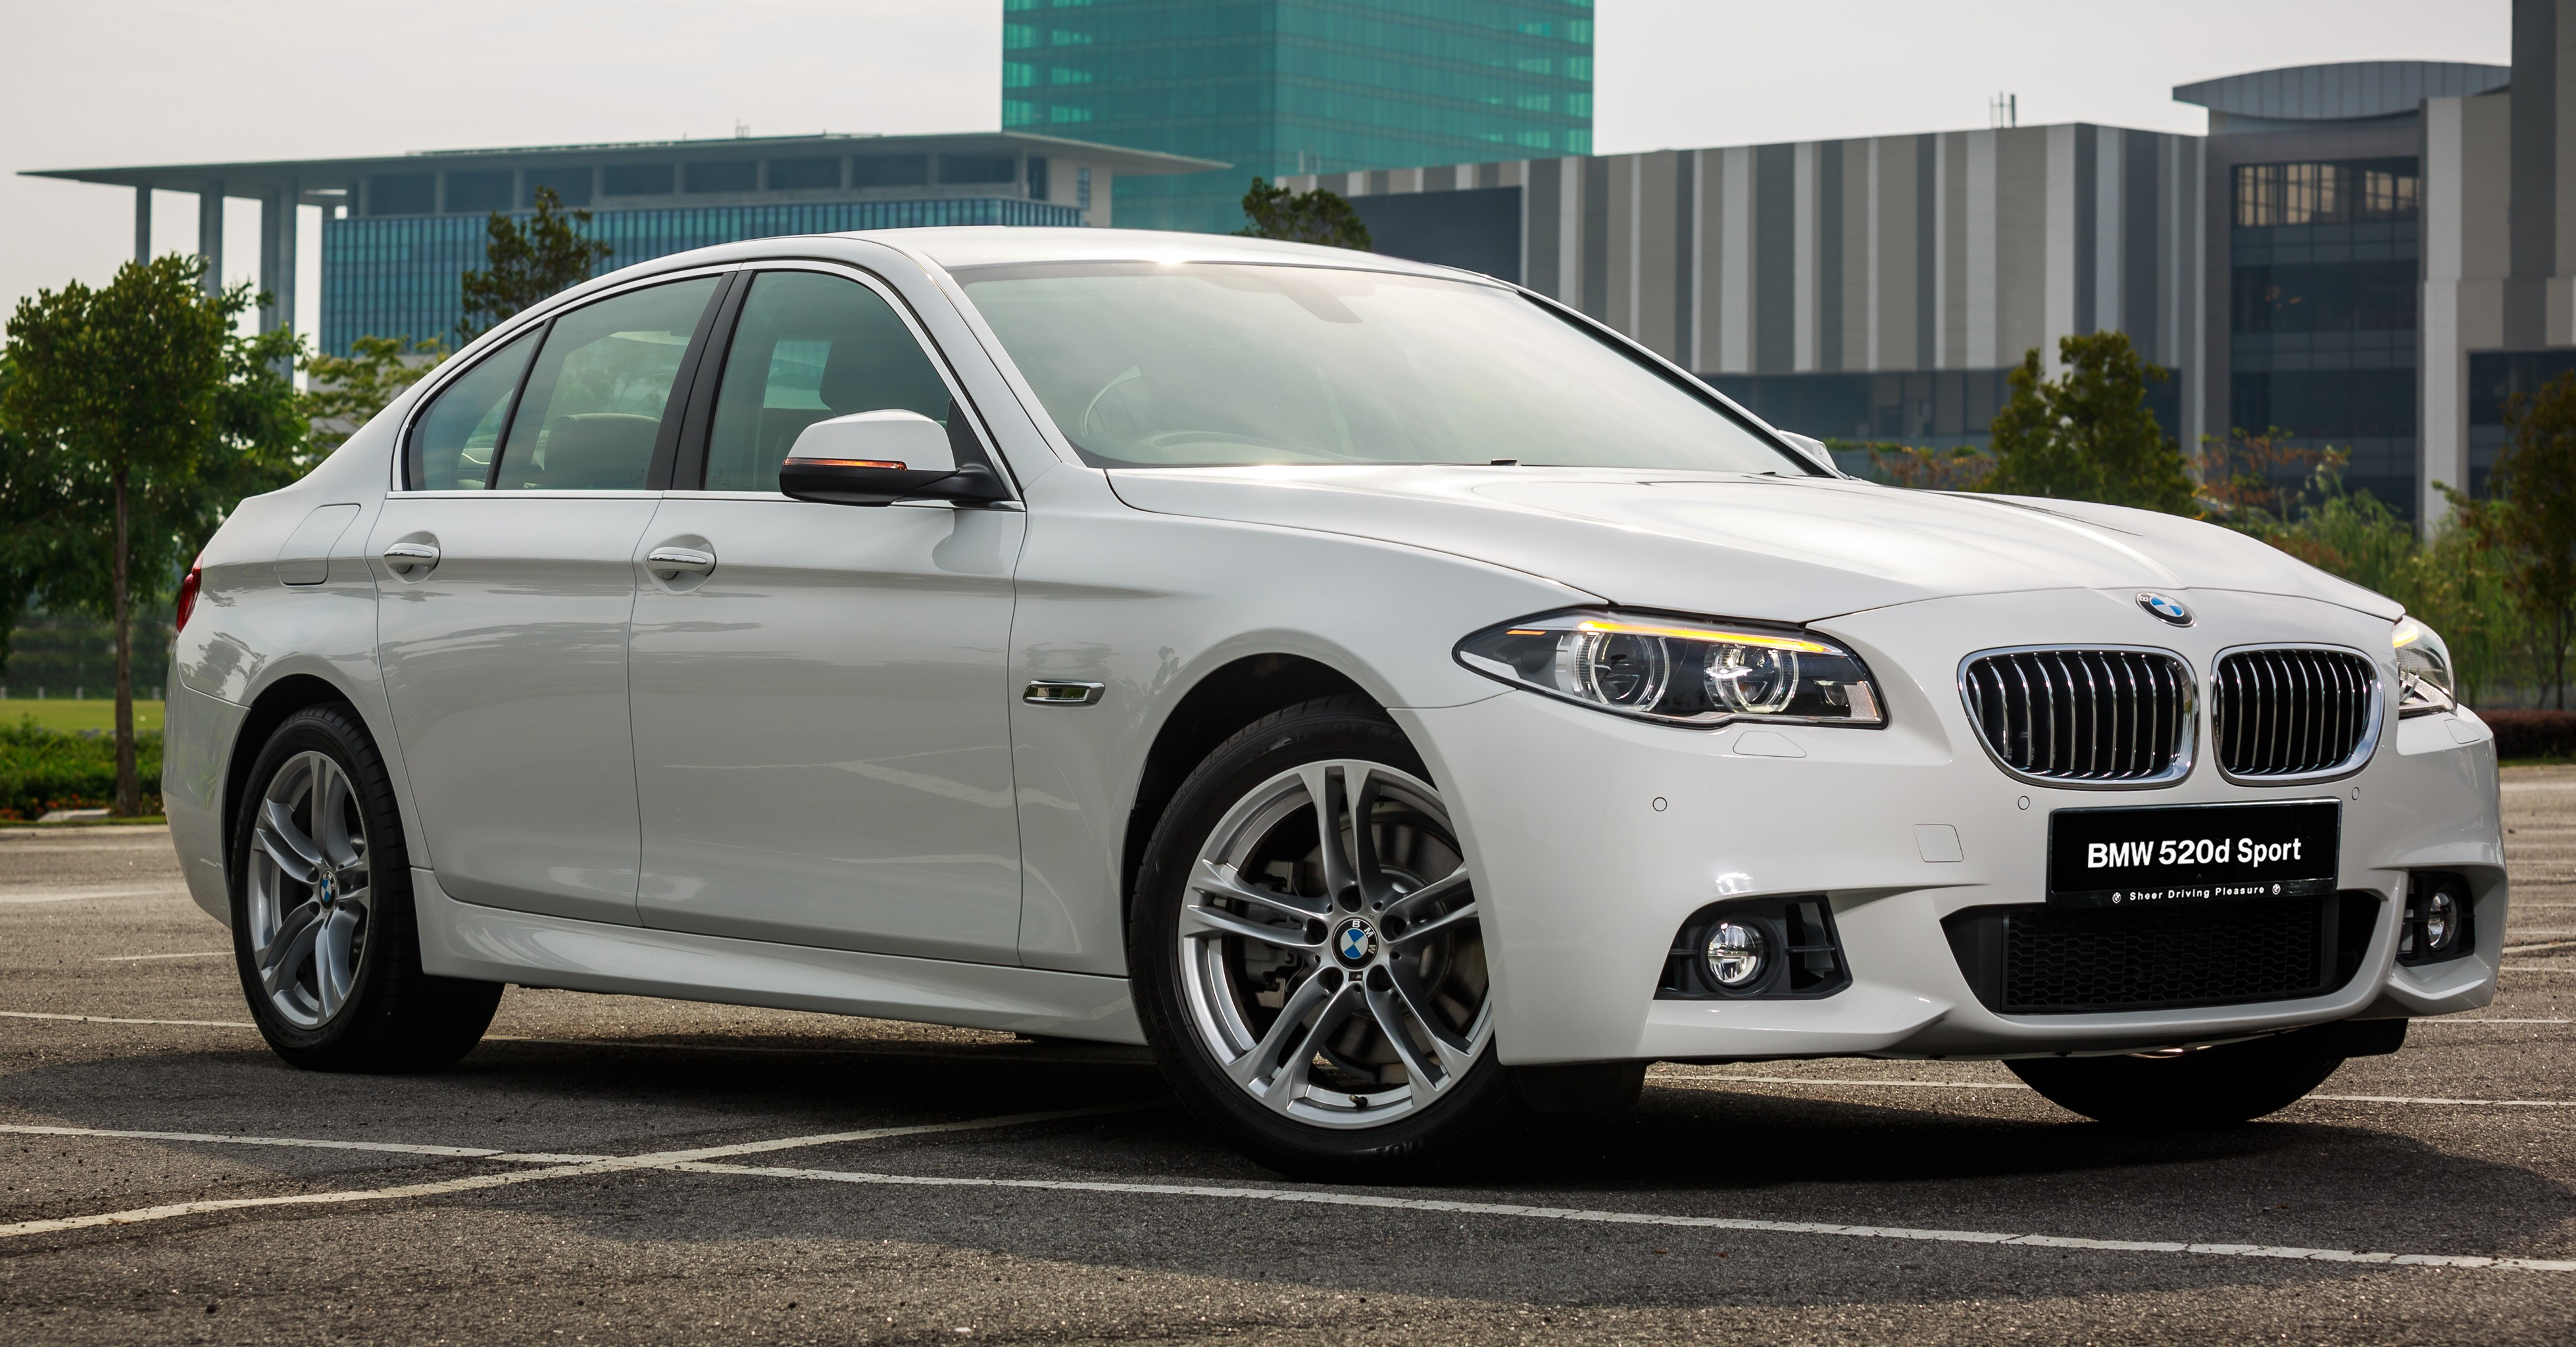 Bmw 520d Sport Introduced In Malaysia 50 Units Image 316417